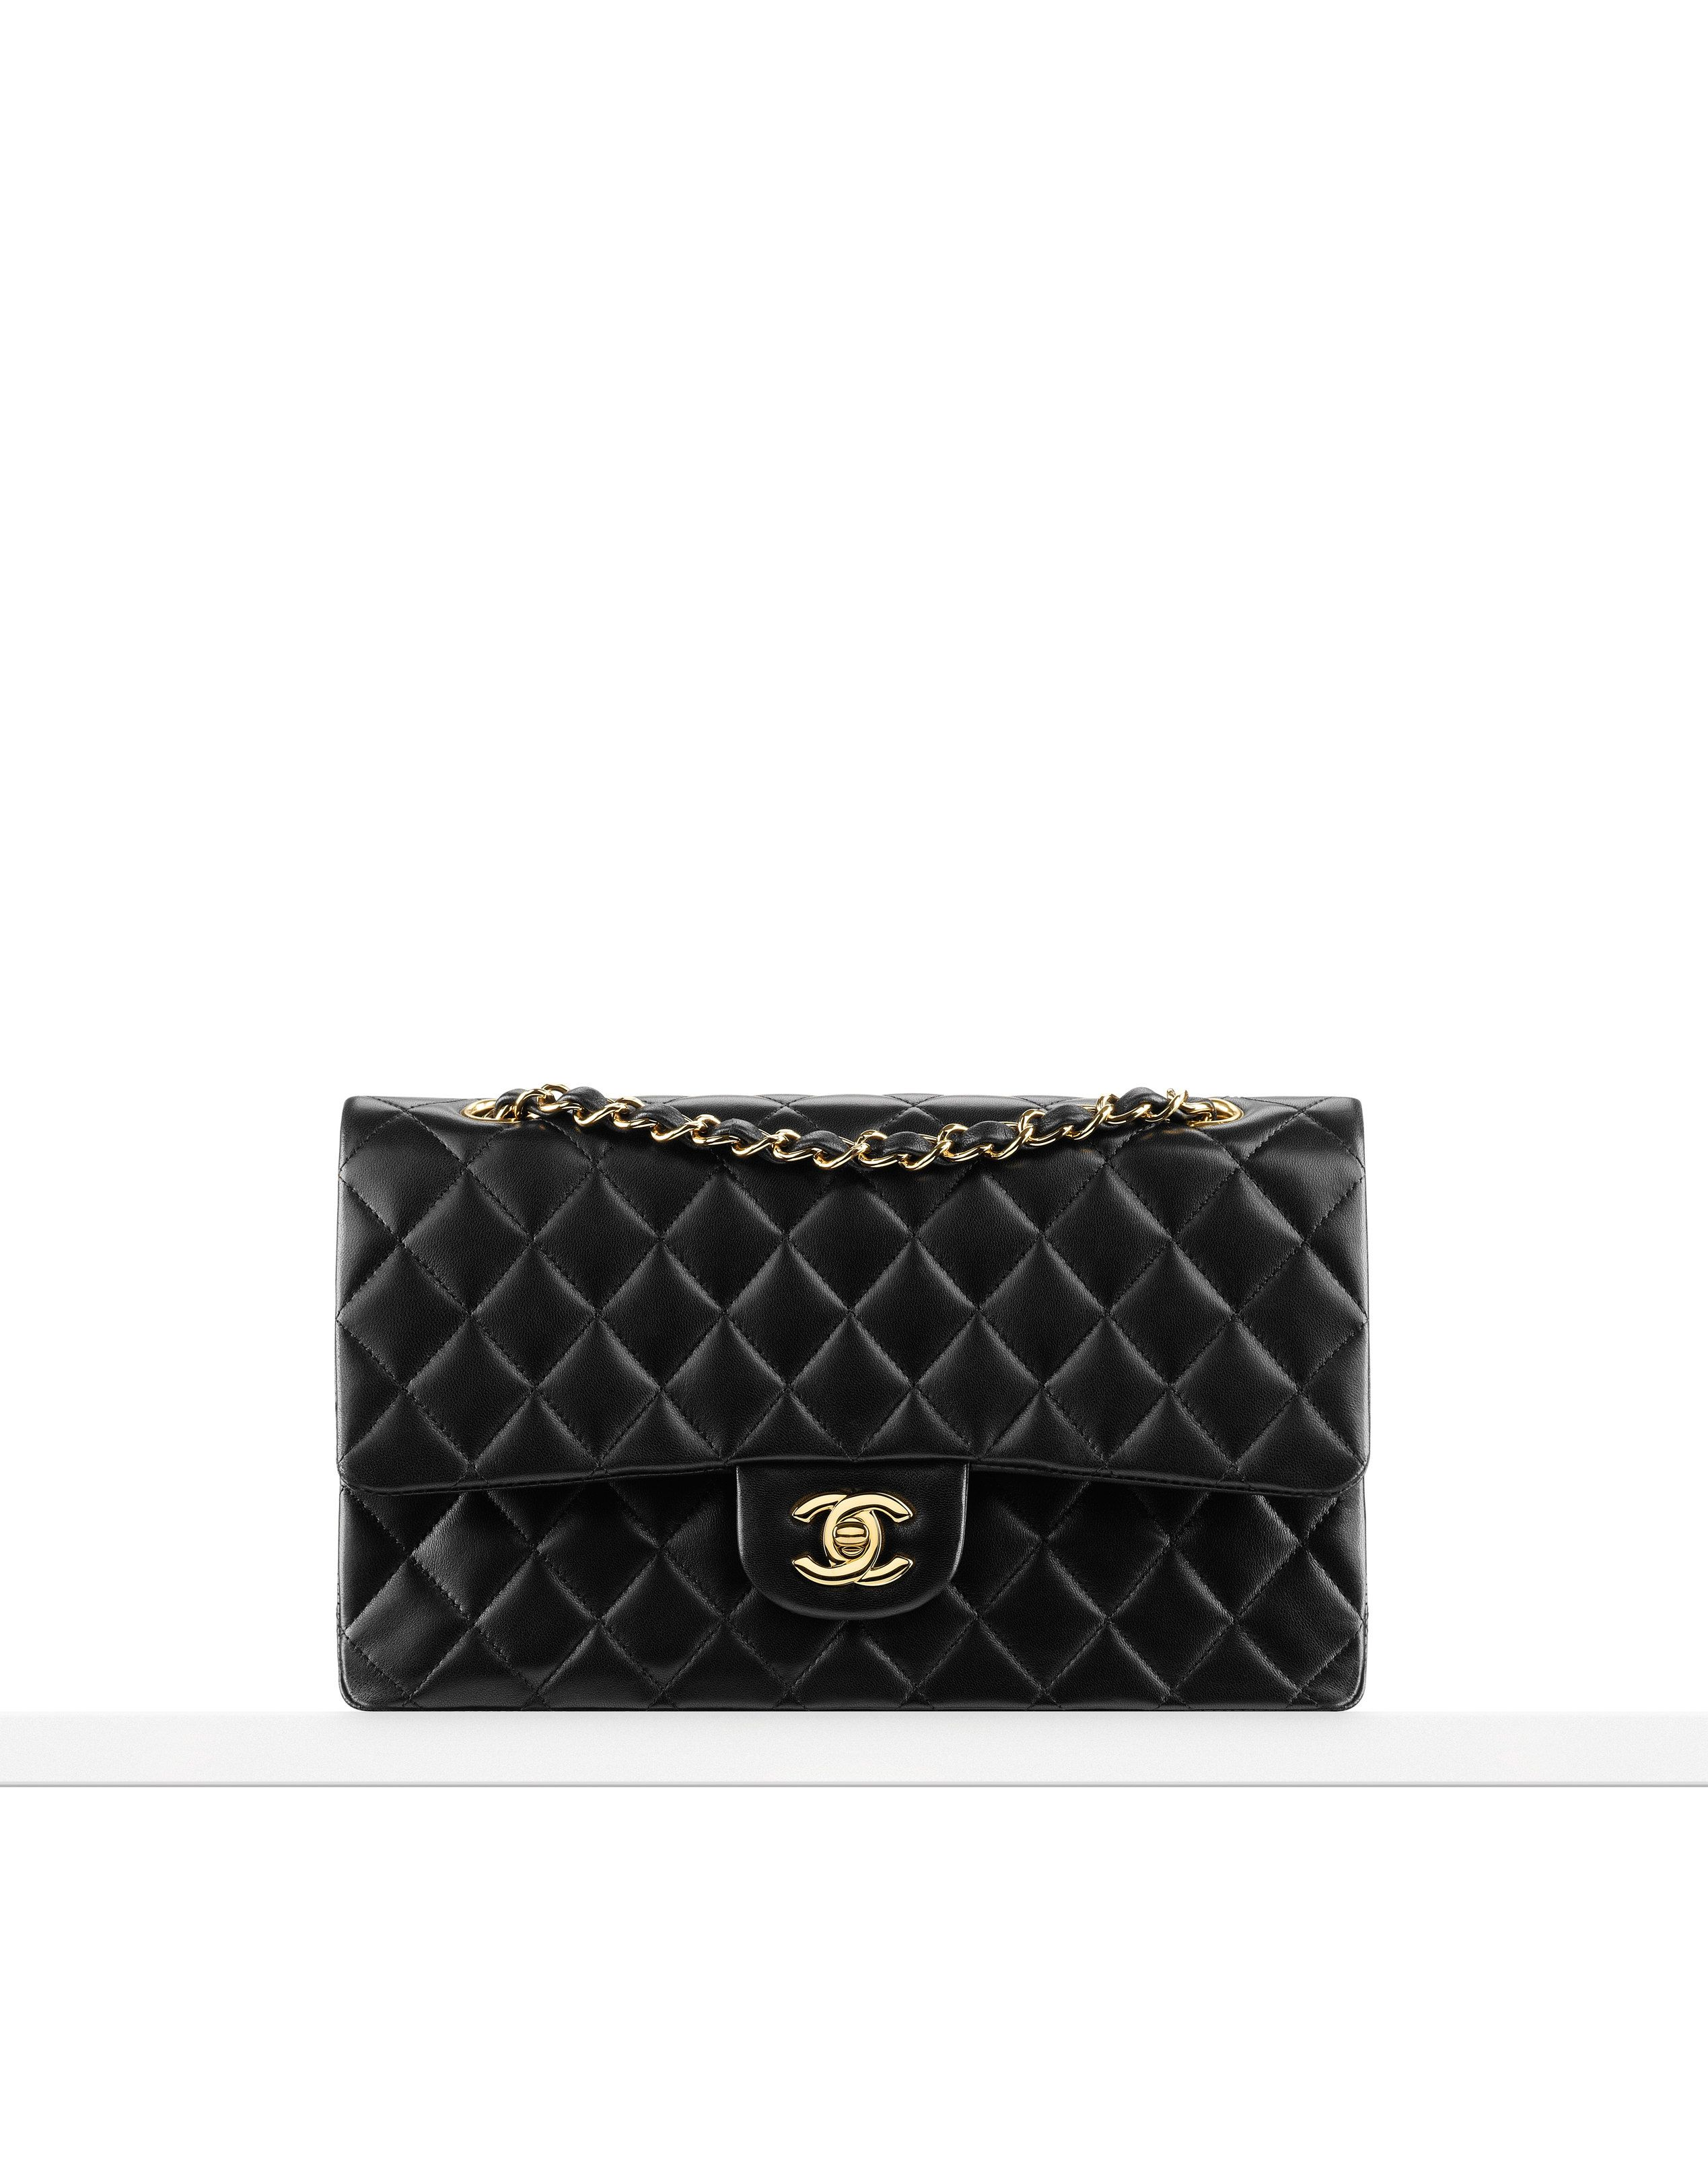 4,900 Chanel Classics - Classic flap bag in quilted lambskin Available in  silver or gold metal Also available in caviar calfskin f01c84a65a